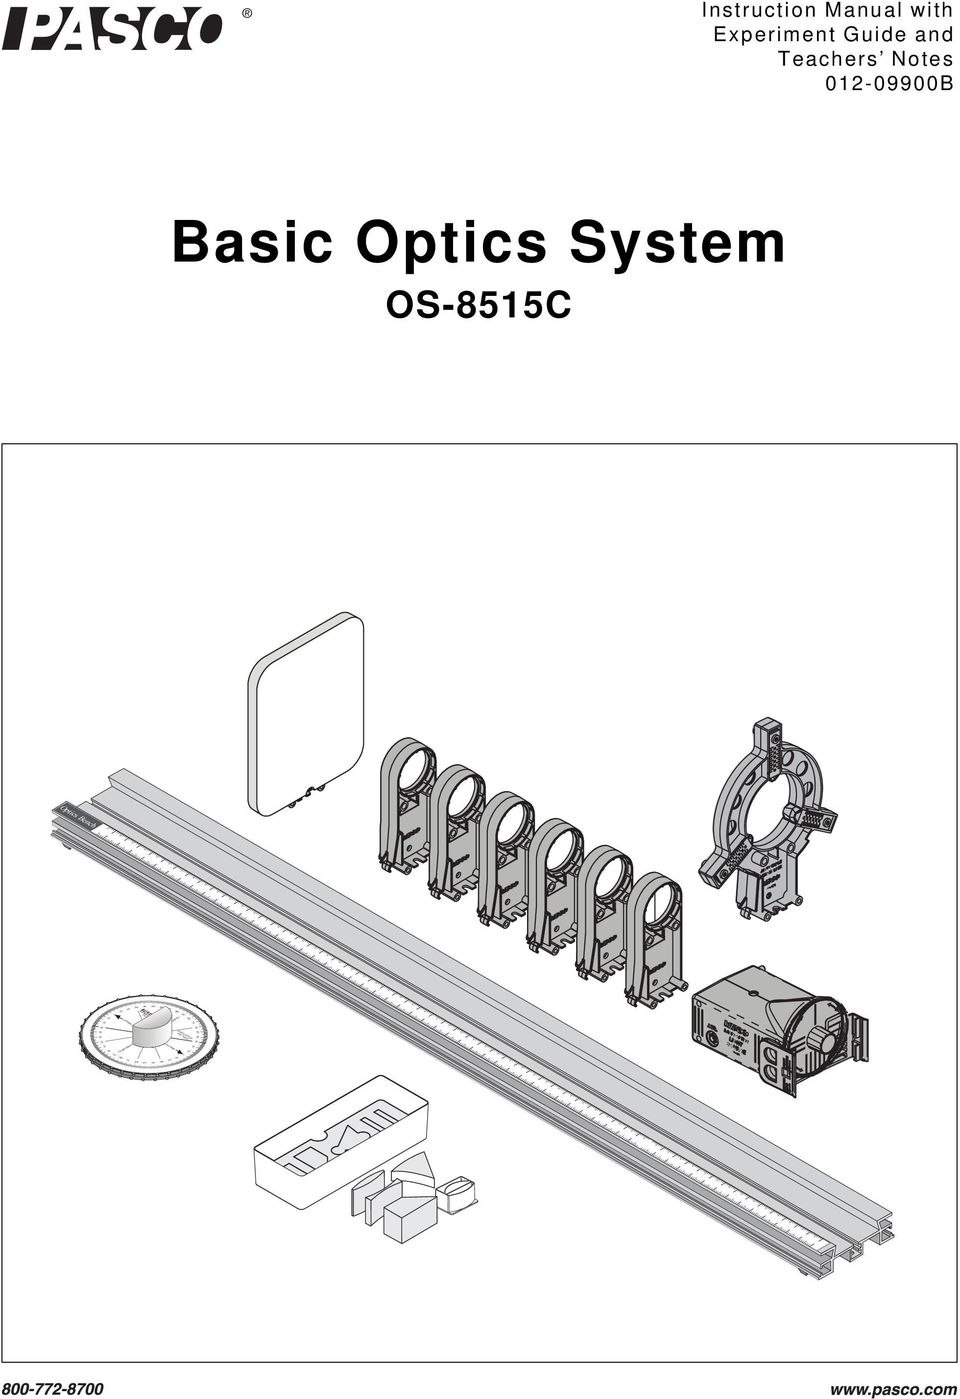 Guide and Teachers Notes 012-09900B Basic Optics System OS-8515C Optics